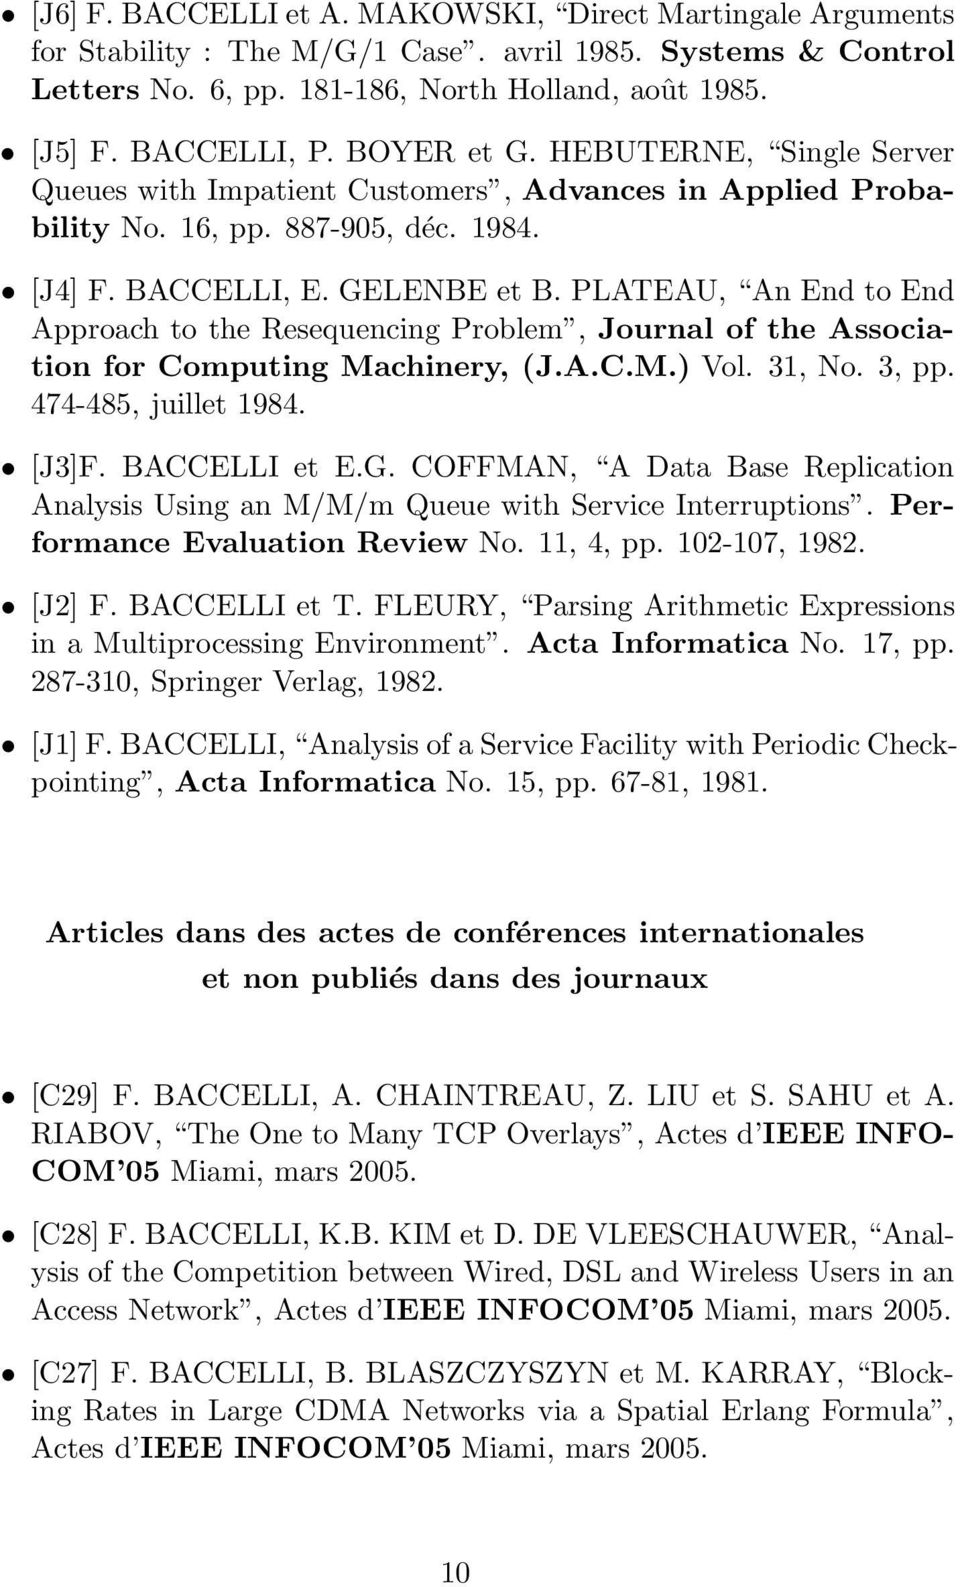 PLATEAU, An End to End Approach to the Resequencing Problem, Journal of the Association for Computing Machinery, (J.A.C.M.) Vol. 31, No. 3, pp. 474-485, juillet 1984. [J3]F. BACCELLI et E.G.